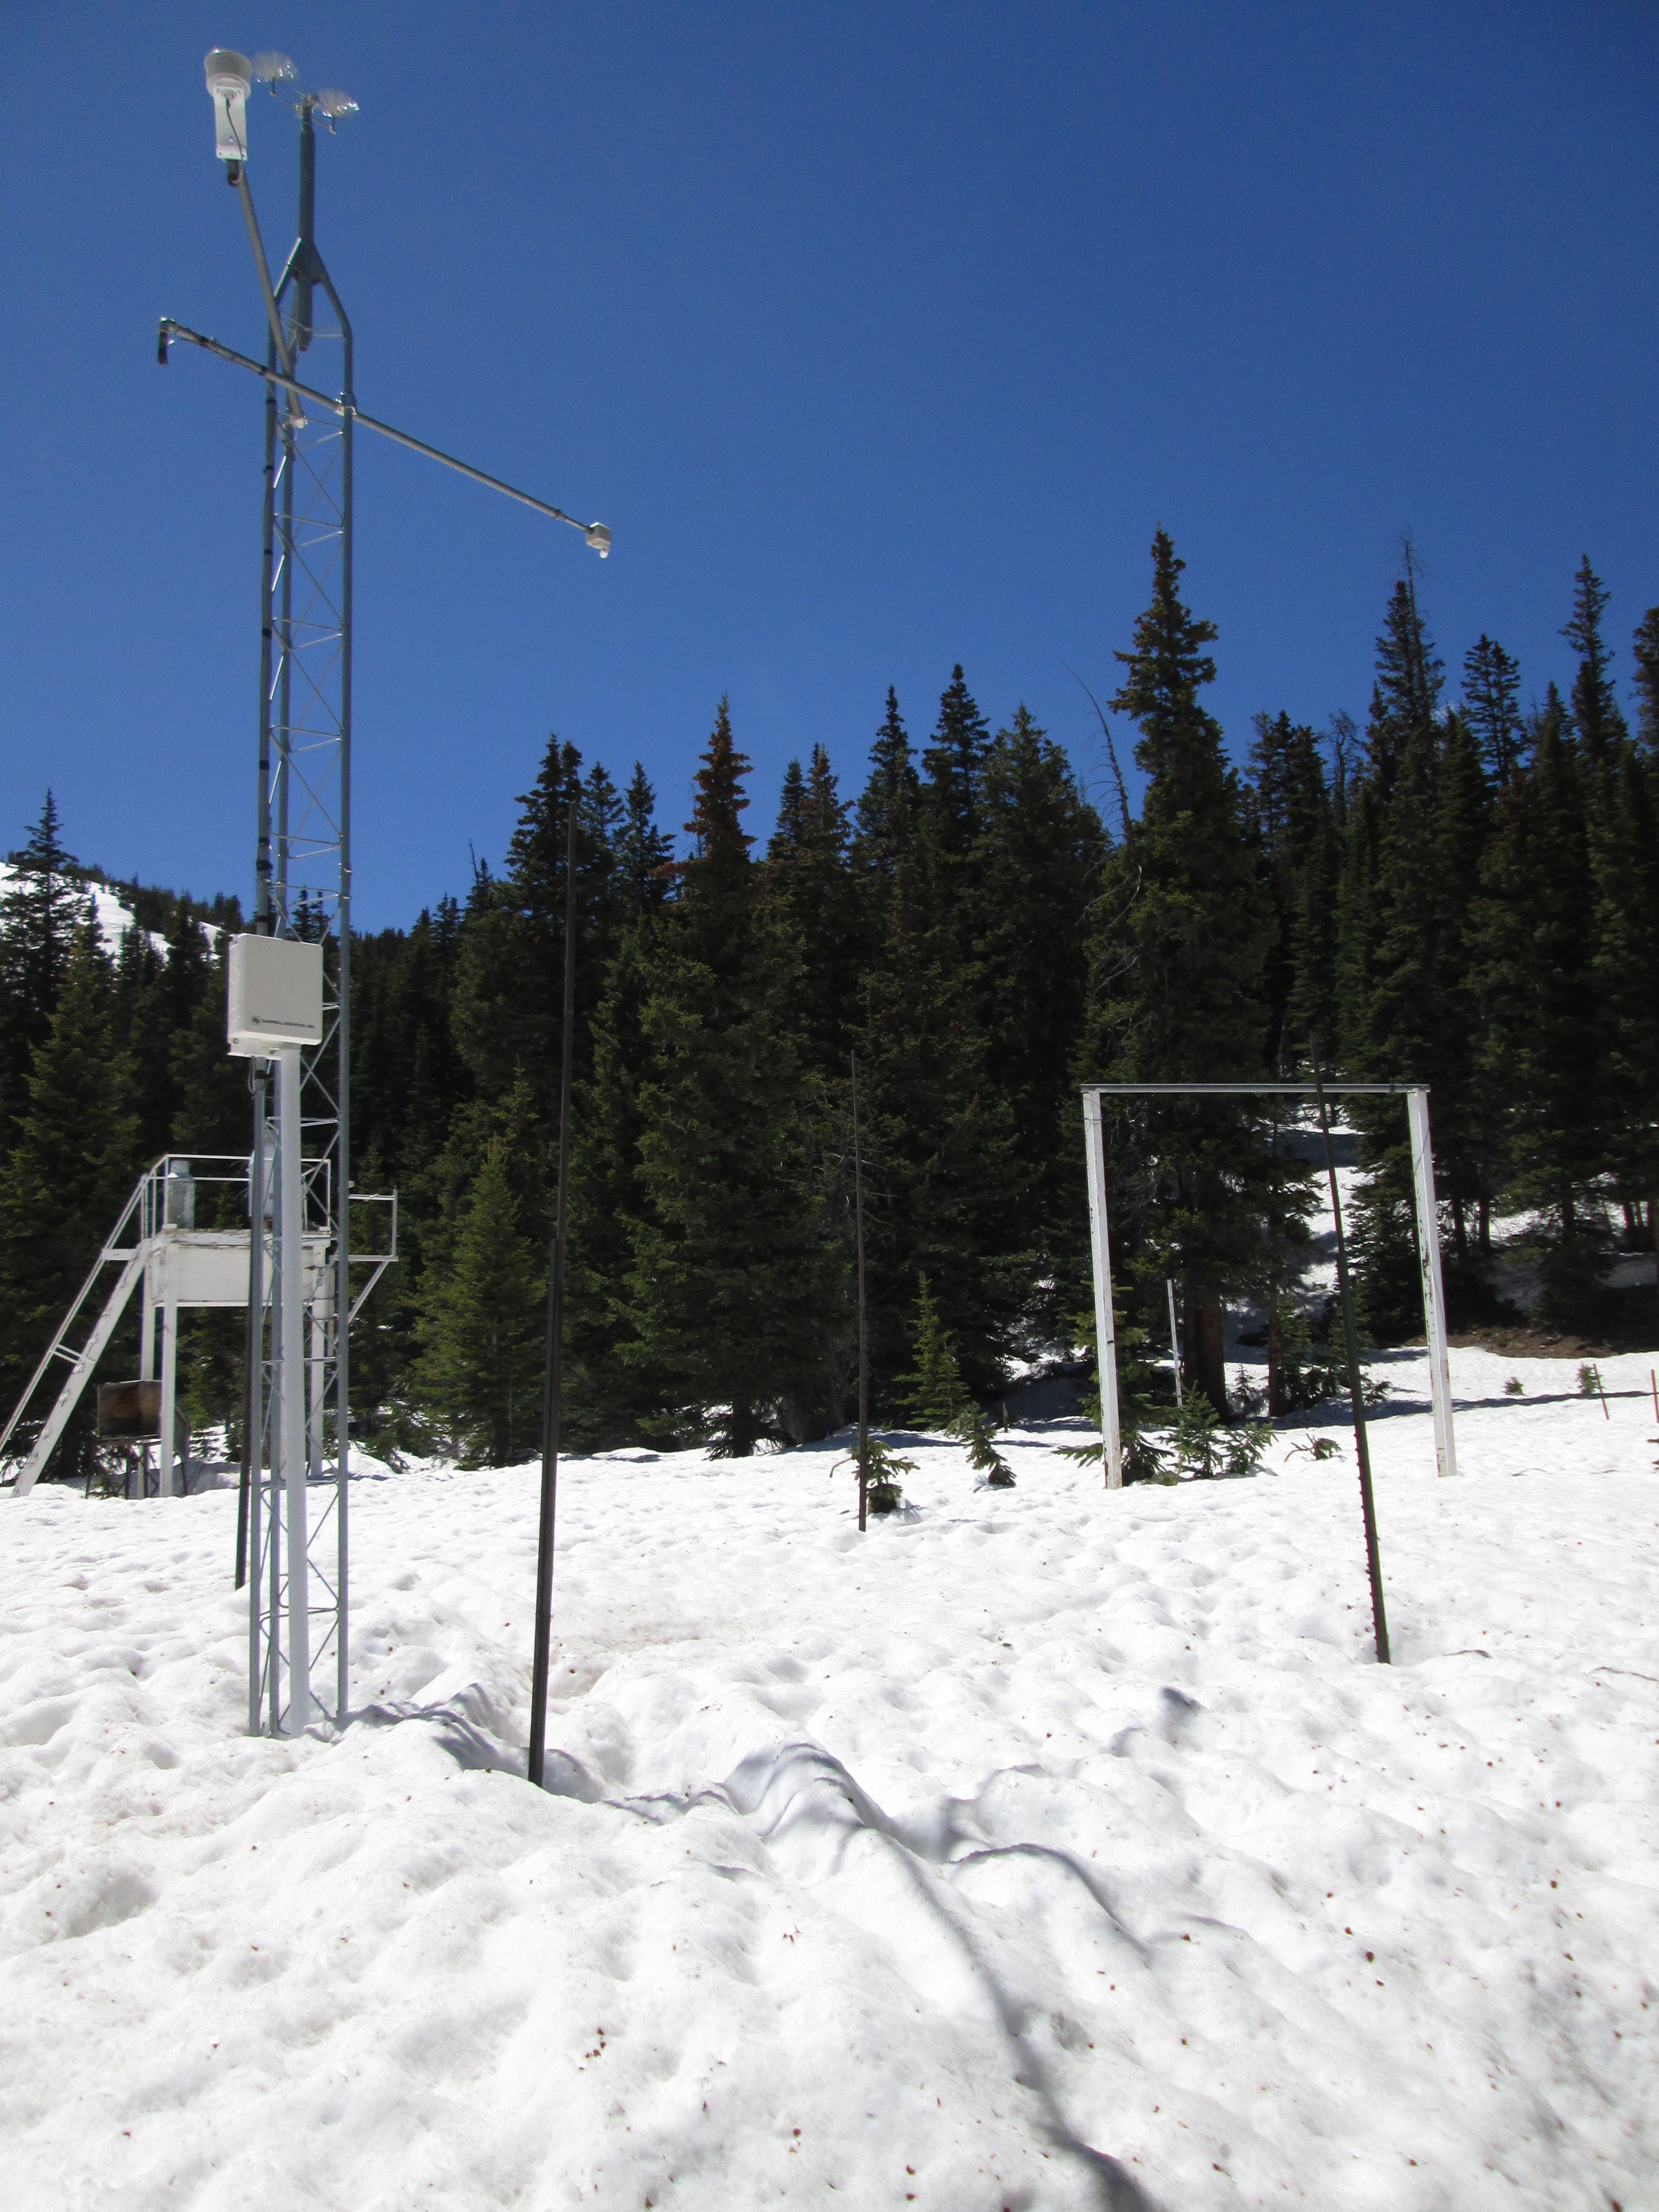 """Among the ten Snotel stations proximal to our CODOS sites, nine are partially or heavily shaded by surrounding trees. The Berthoud Summit Snotel, on the other hand, is uniquely located in an open meadow with nearly complete exposure to direct solar radiation from the east, south, and west. As a result, Berthoud Summit Snotel SWE and snow depth data reflect the full impact of dust-on-snow on snow albedo and, therefore, on snowmelt rates. The snow pillow measuring SWE is directly beneath the snow depth sensor positioned at the end of the arm extending northward (away from viewer) from the top of the instrument mast. During the sunny period leading up to the June 3 site visit, snowmelt rates rose only slowly from 0.5-1.0"""" SWE loss per day, with clean snow from the Memorial Day weekend storm still at the snowpack surface and maintaining a comparatively high snow albedo. SWE loss was 1.4"""" on the day of the site visit, with dust by then widely exposed and snow albedo substantially reduced. Since then, snowmelt rates rose further to 1.8-2.0""""/day as merged dust layers D3-8 further consolidated in the snow surface. As of this writing on Monday, June 9, more than half of the snowcover observed on June 3 has melted."""